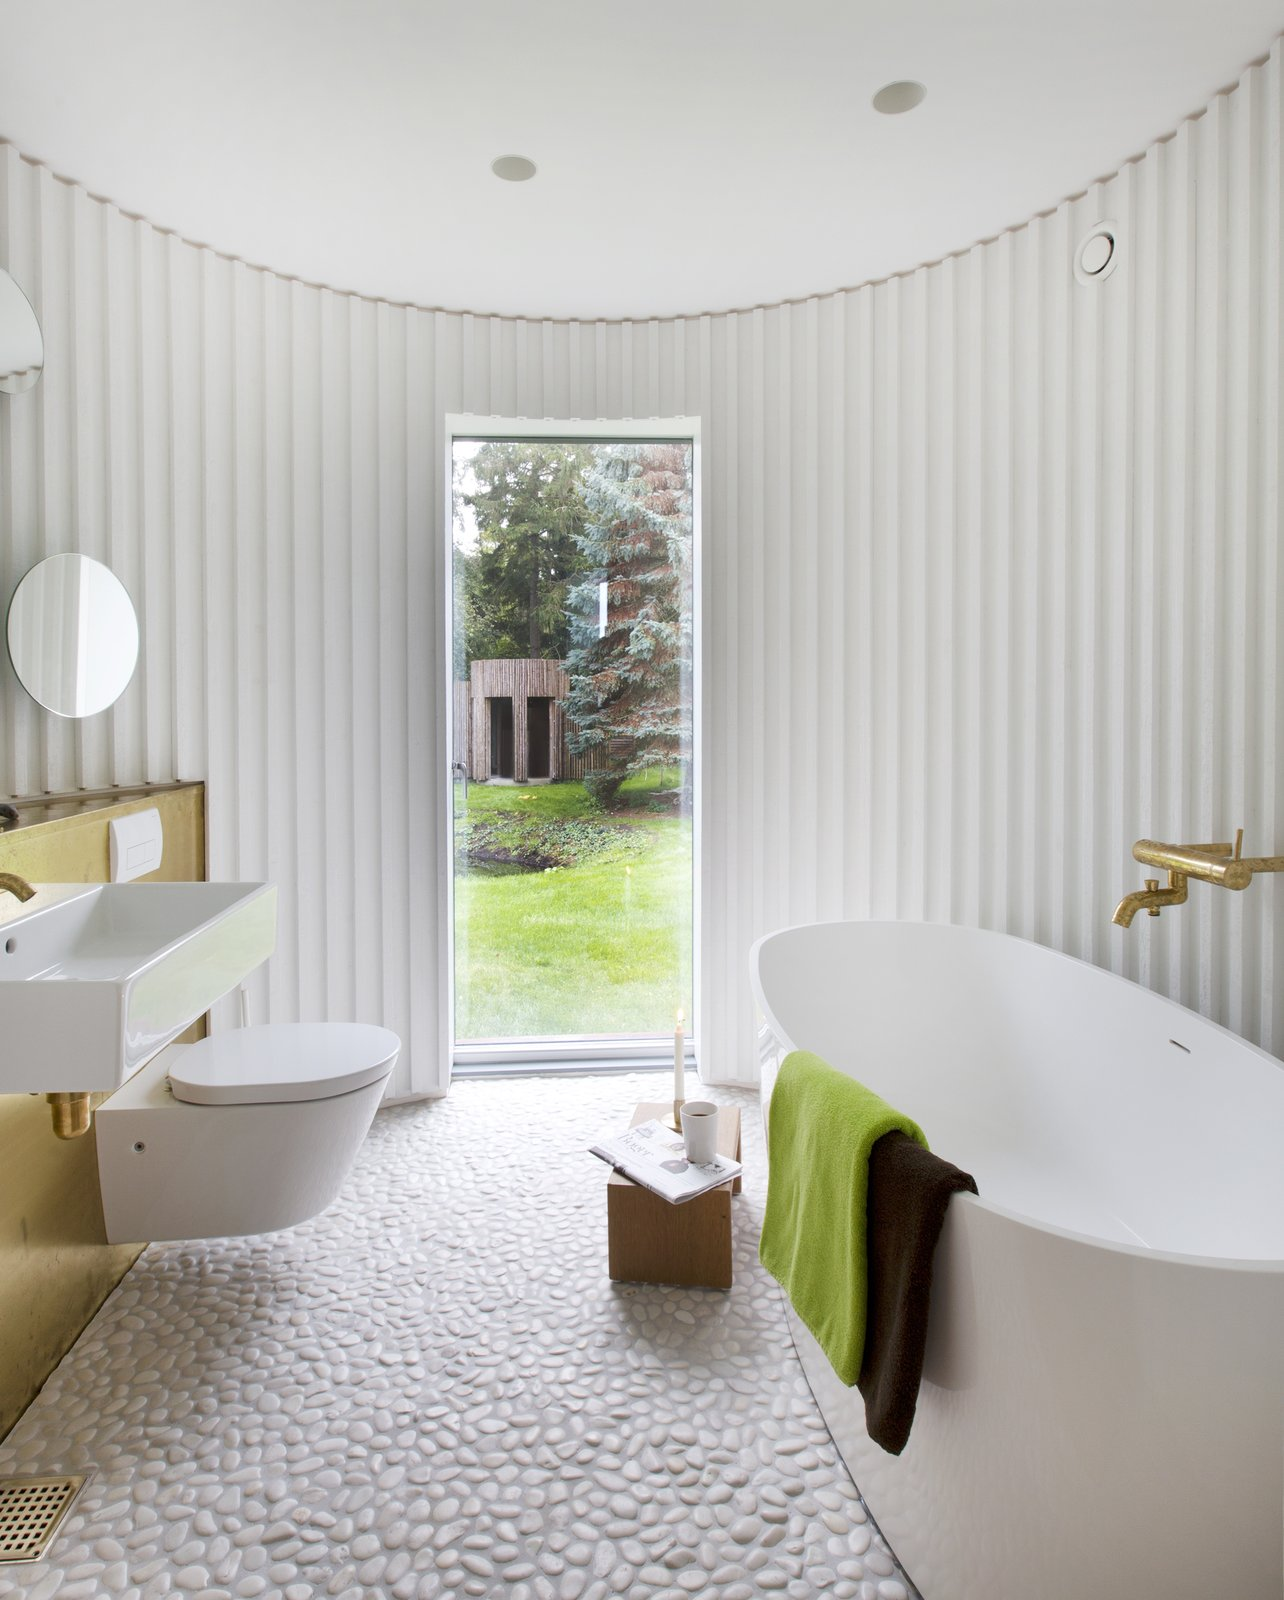 Bath, Wall Mount, Freestanding, Soaking, Recessed, One Piece, and Metal  Bath One Piece Recessed Metal Photos from Stay in This Danish Vacation Home Made Up of 9 Log-Clad Cylinders